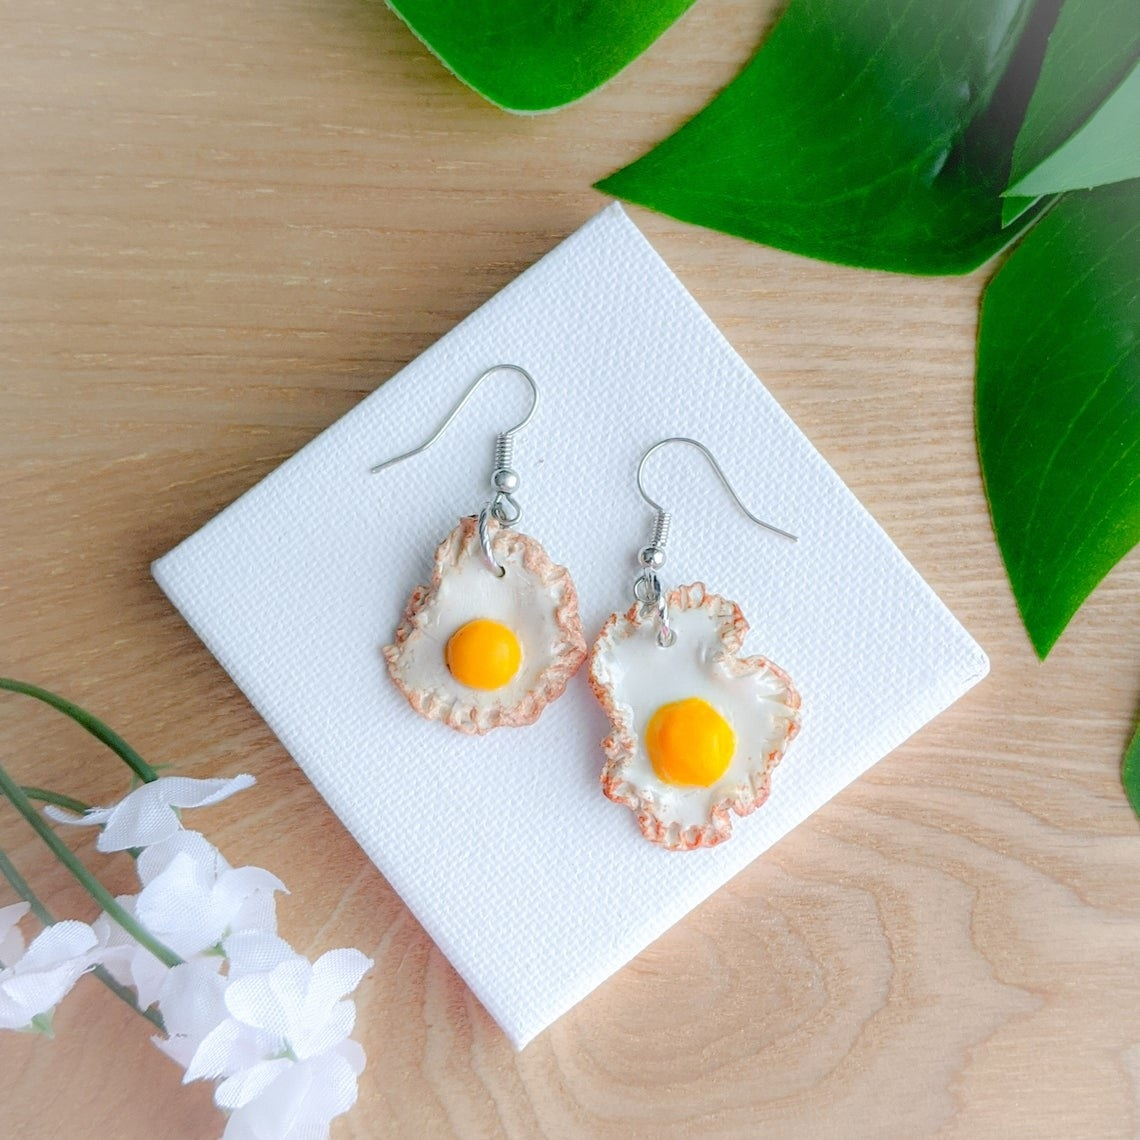 hanging egg earrings